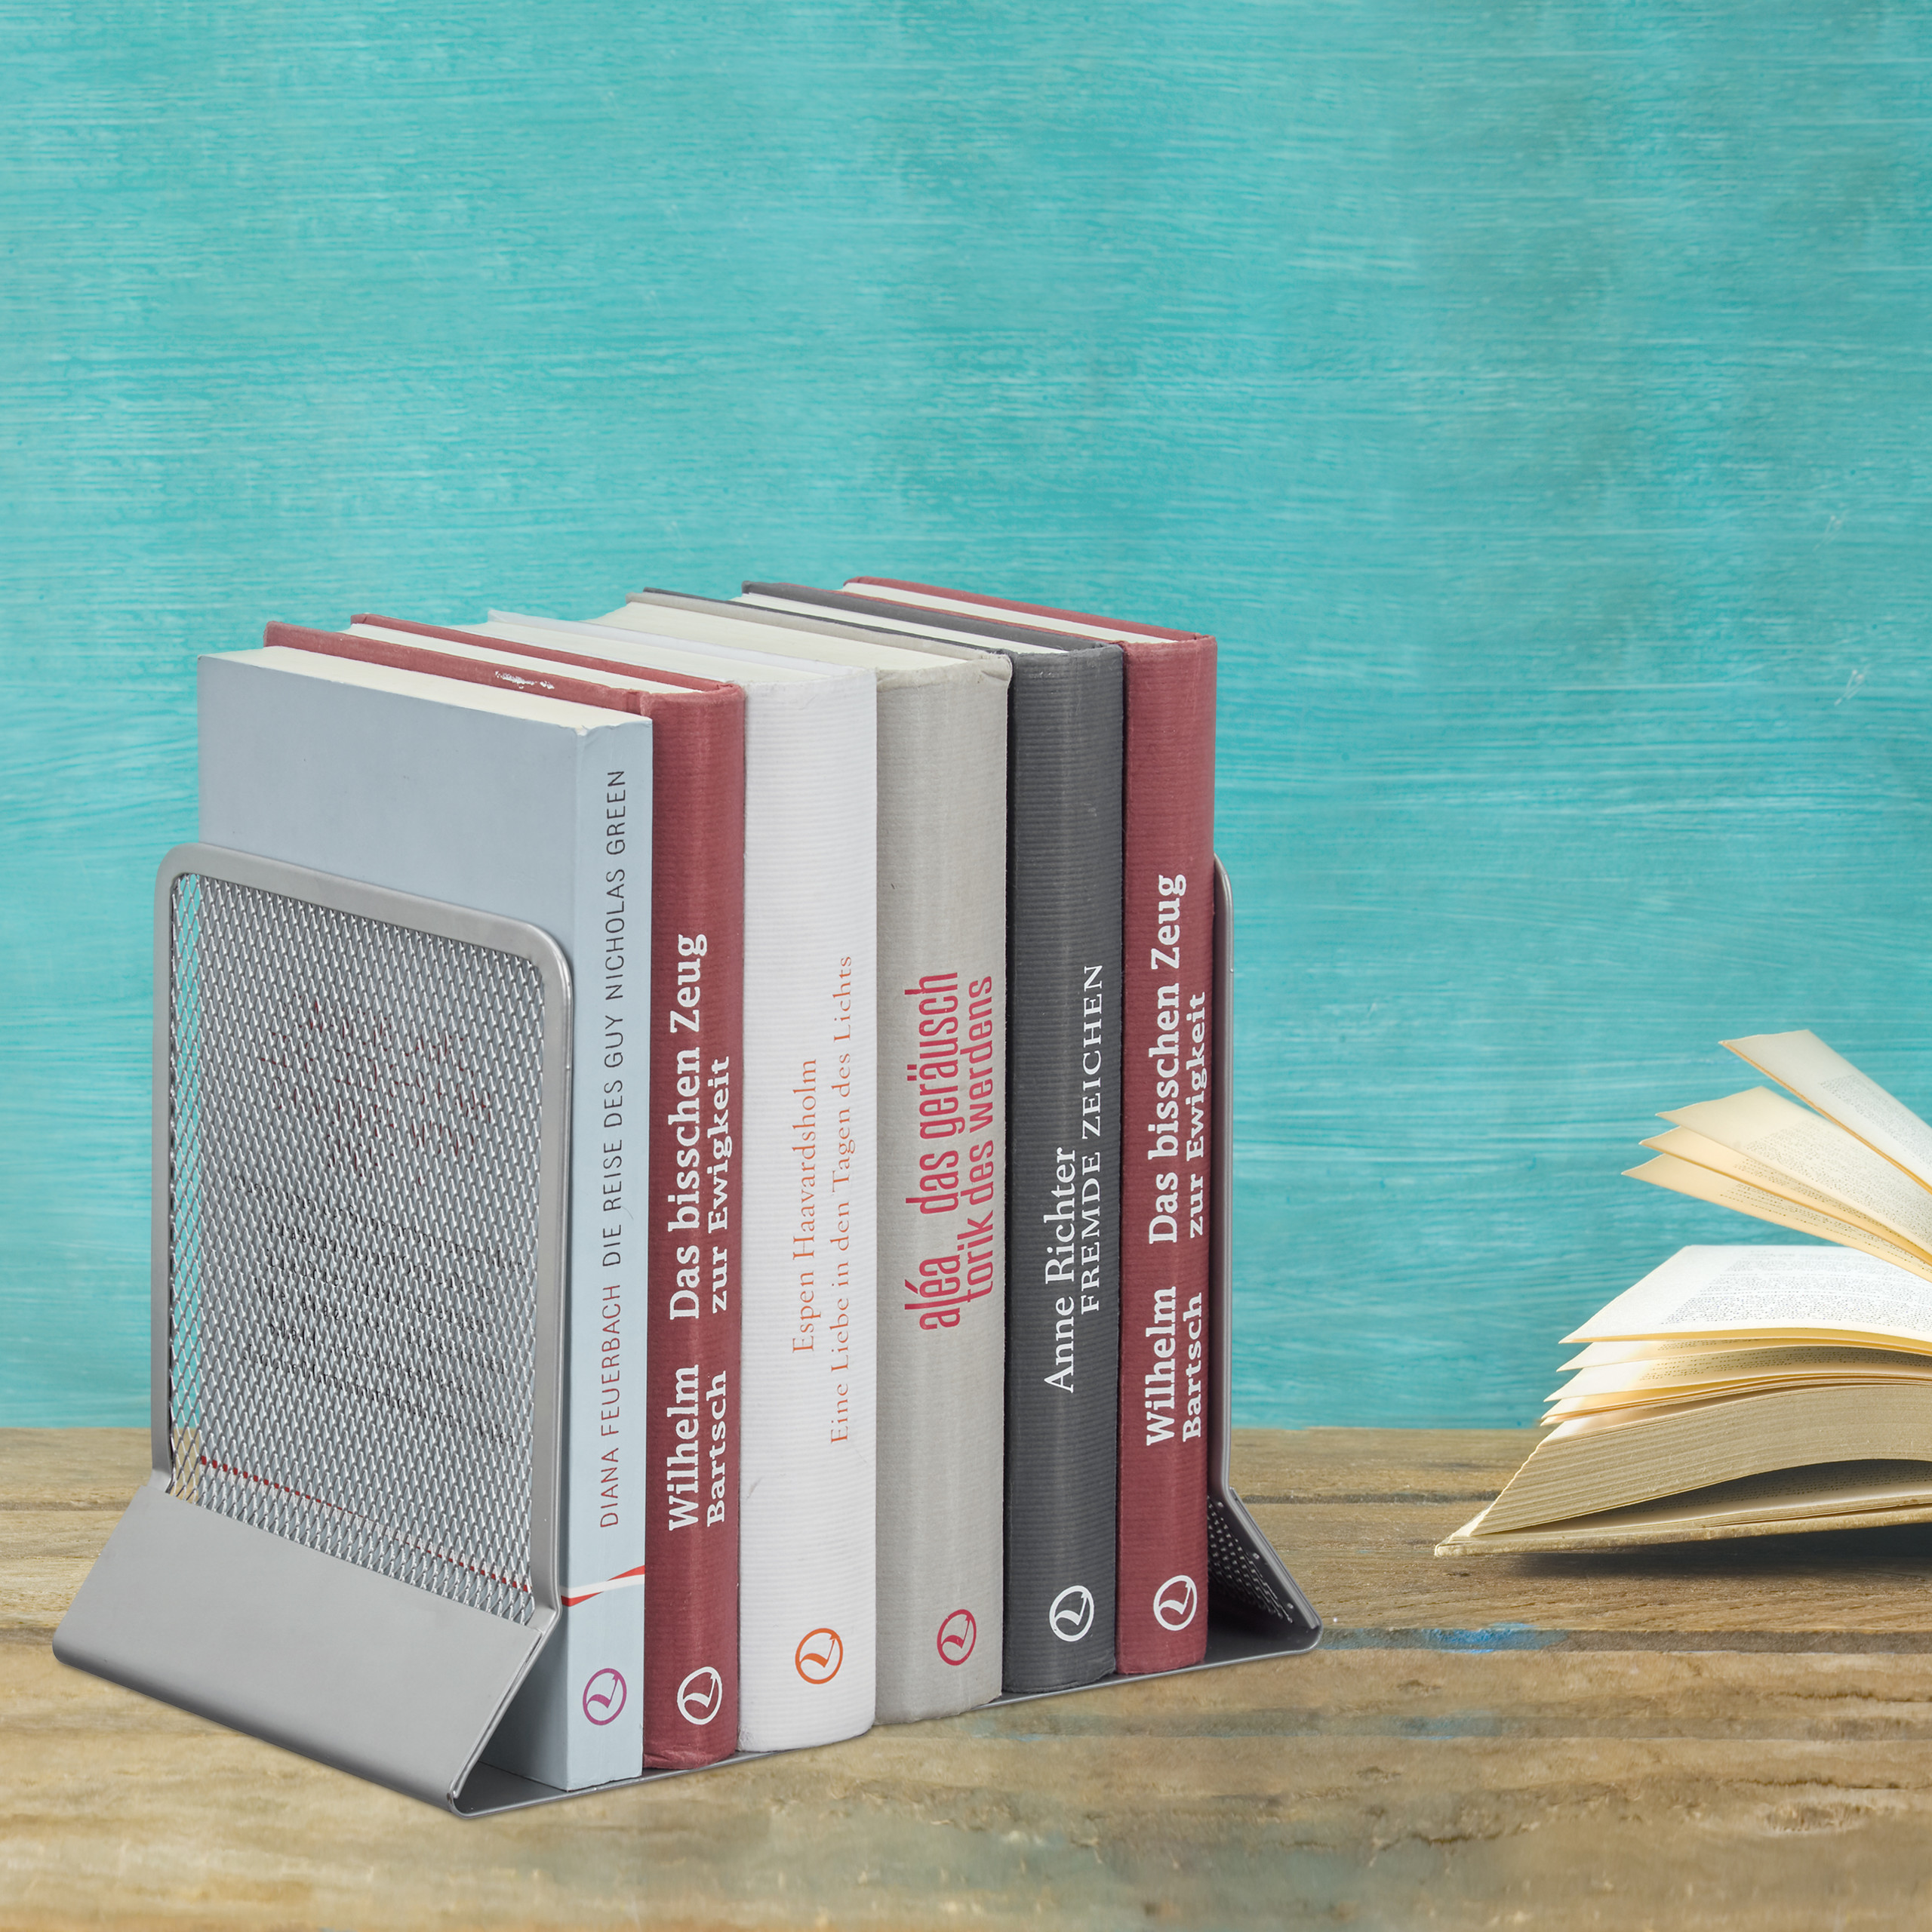 2-Piece-Bookend-Set-Decorative-Book-CD-and-DVD-Holders-Metal-Book-Support thumbnail 13